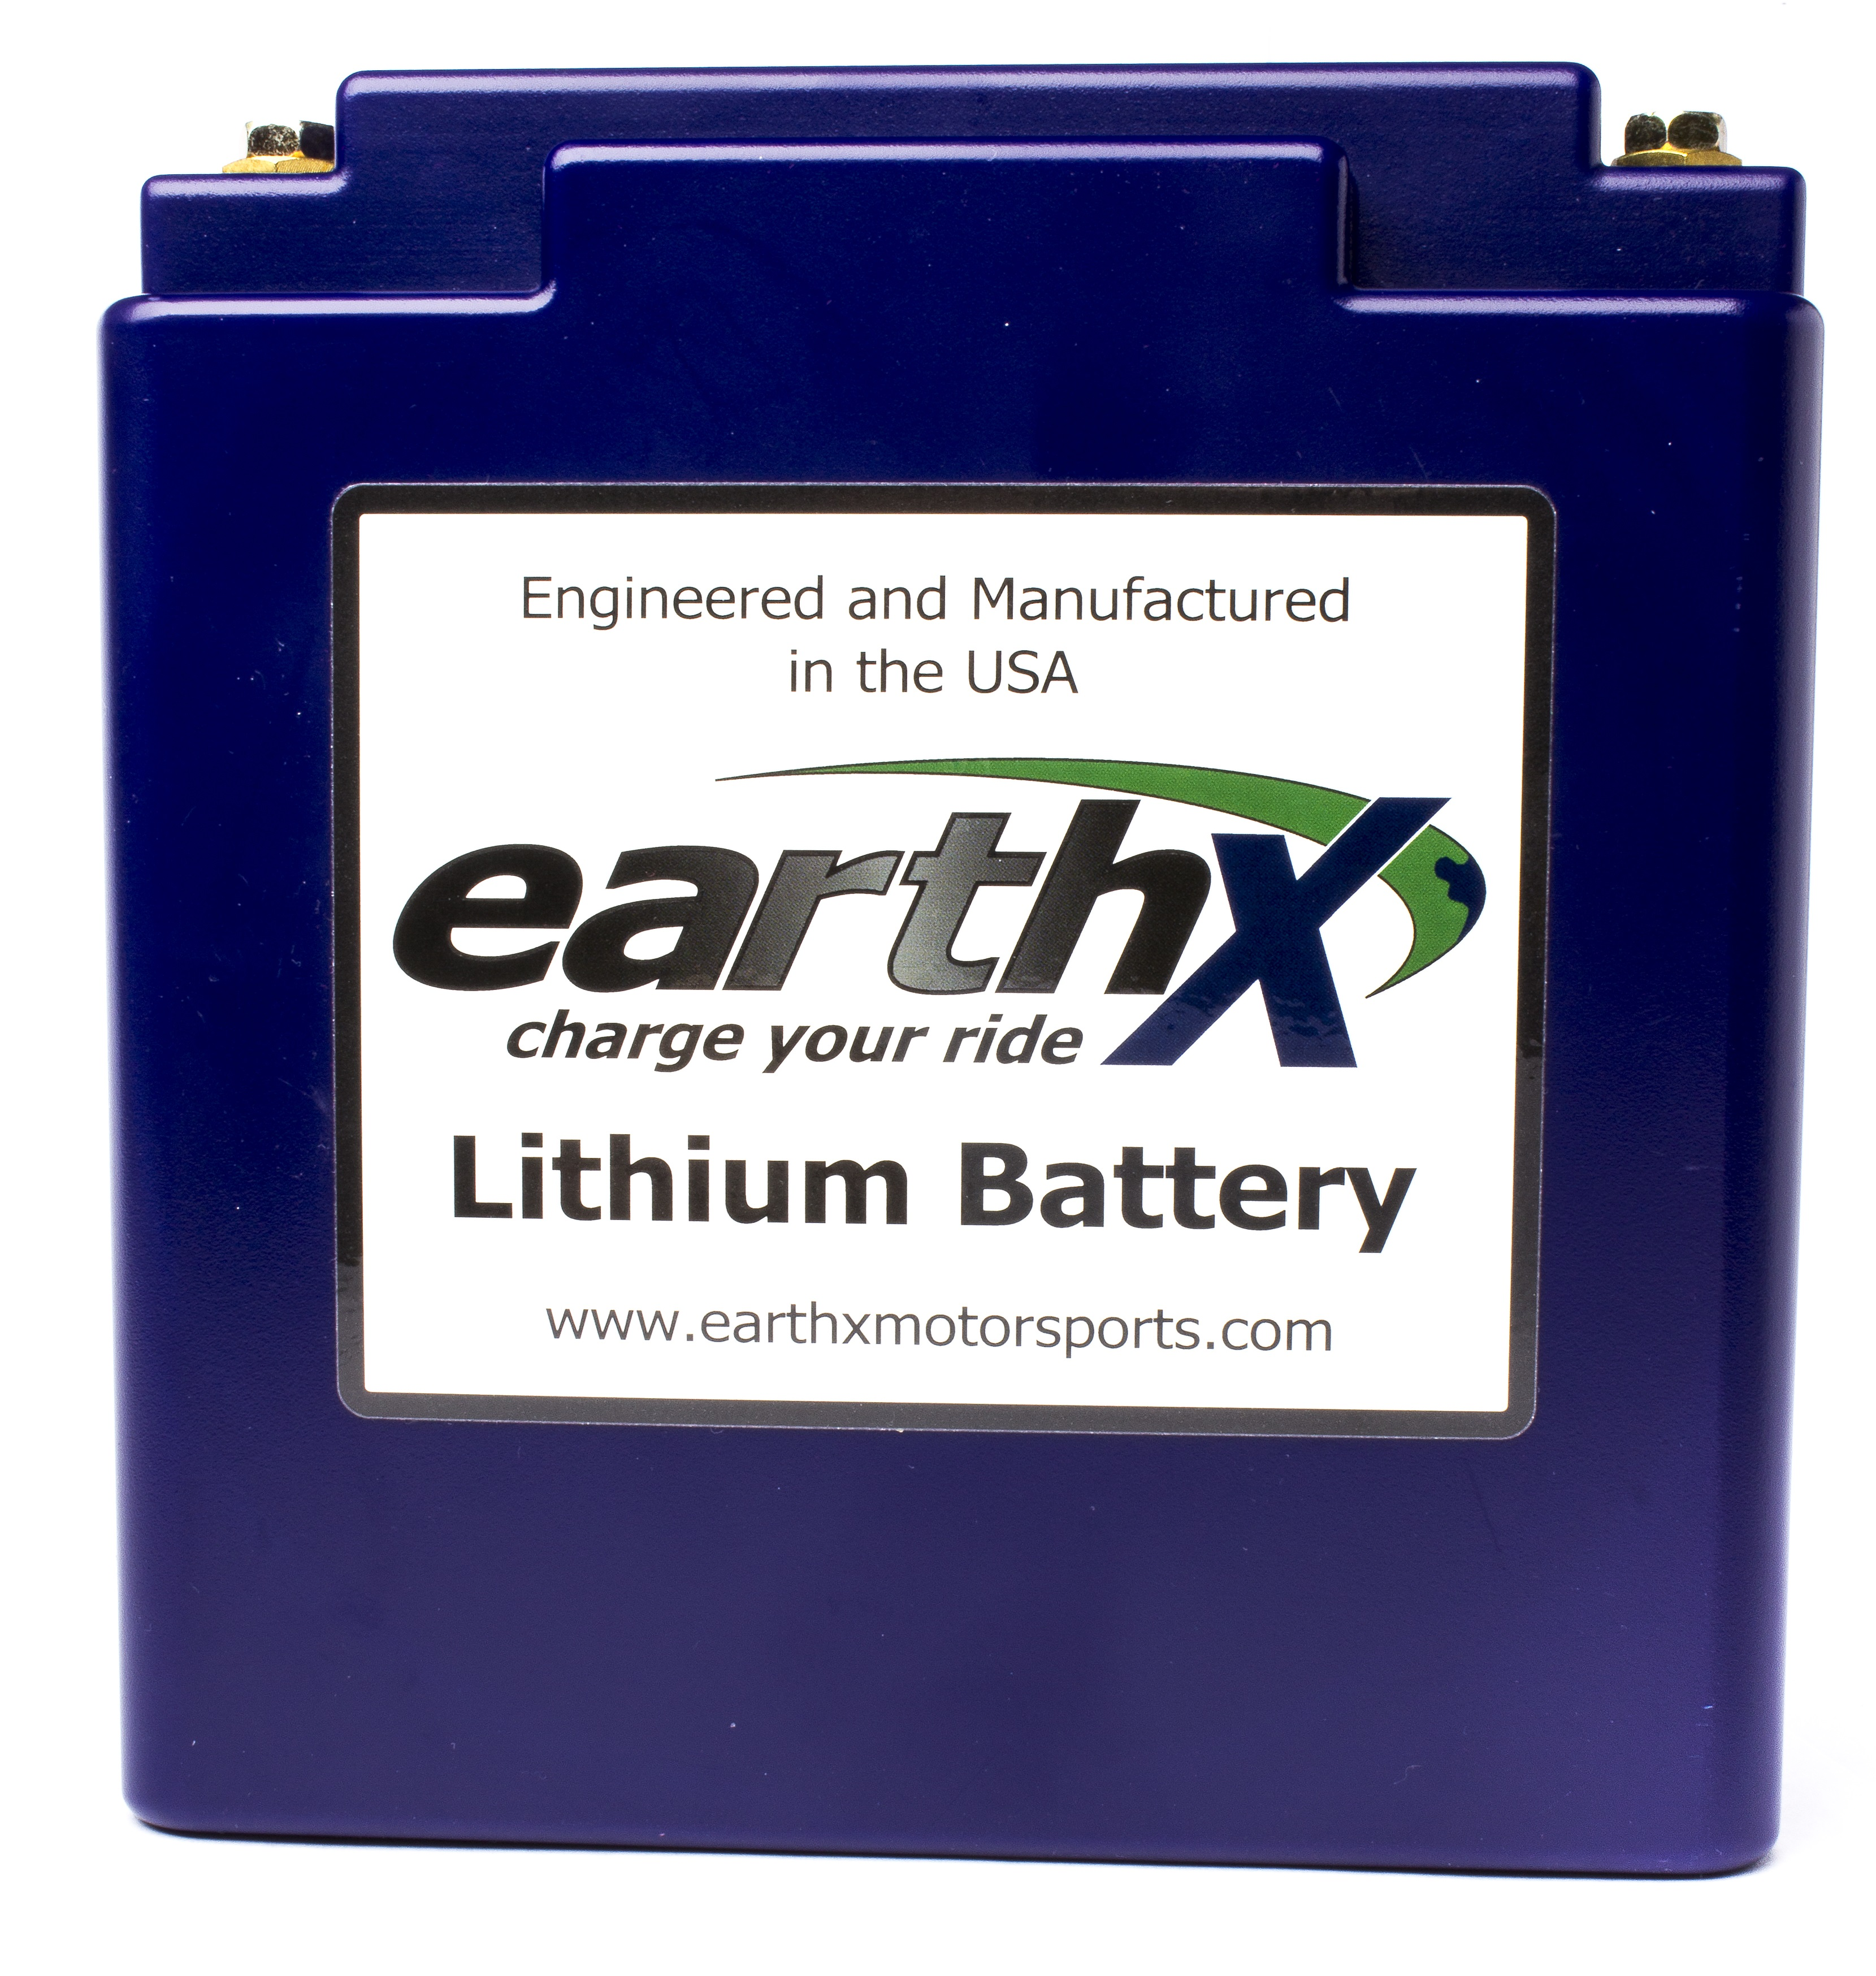 Earthx Batteries